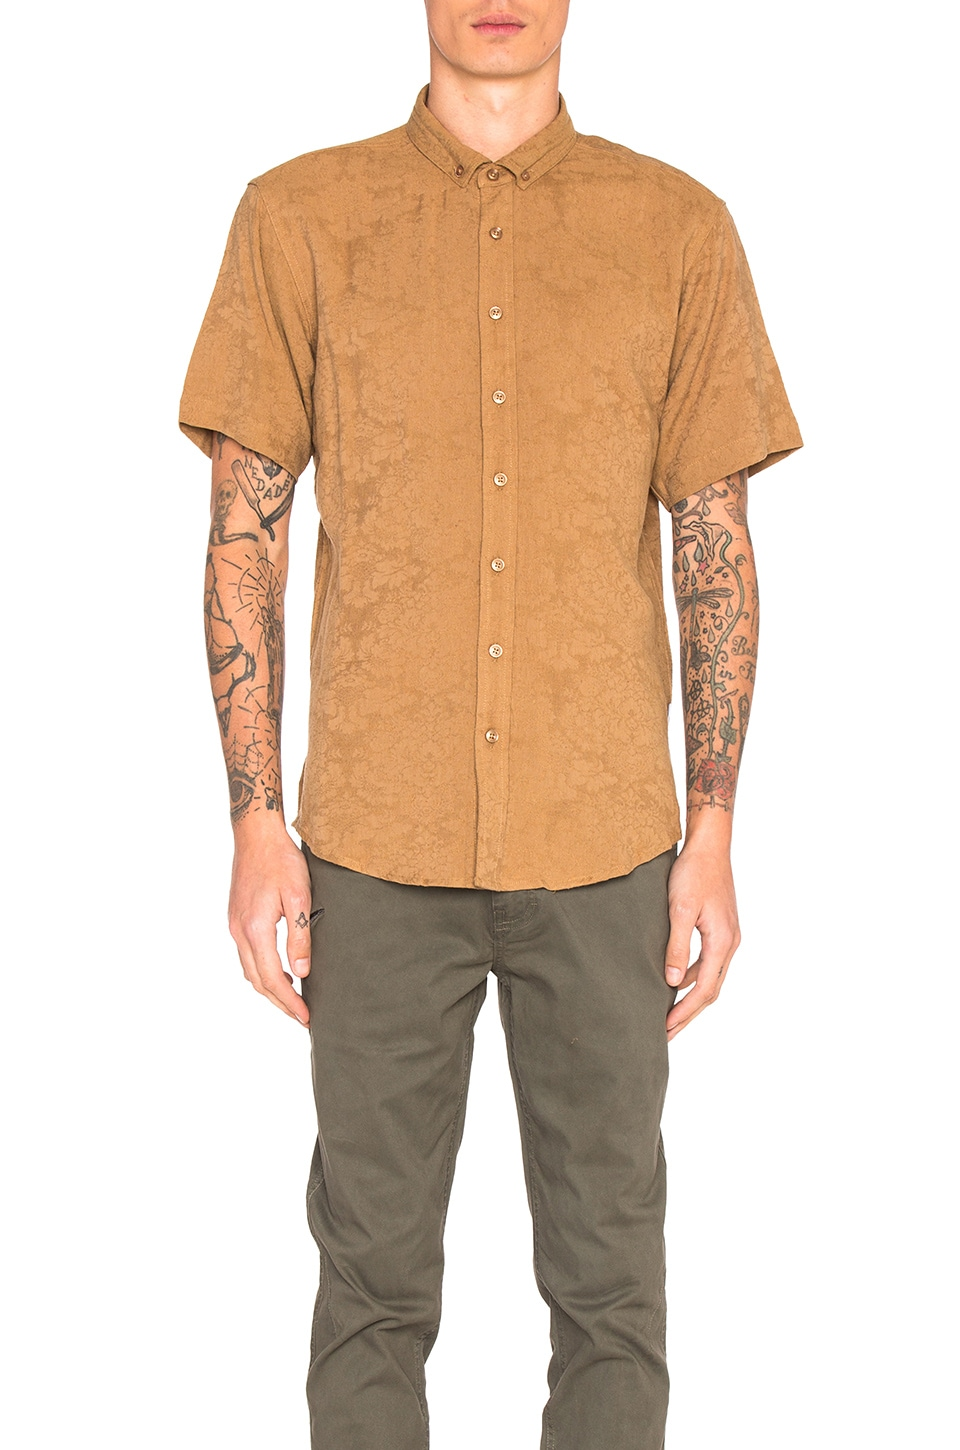 Layton Shirt by Publish